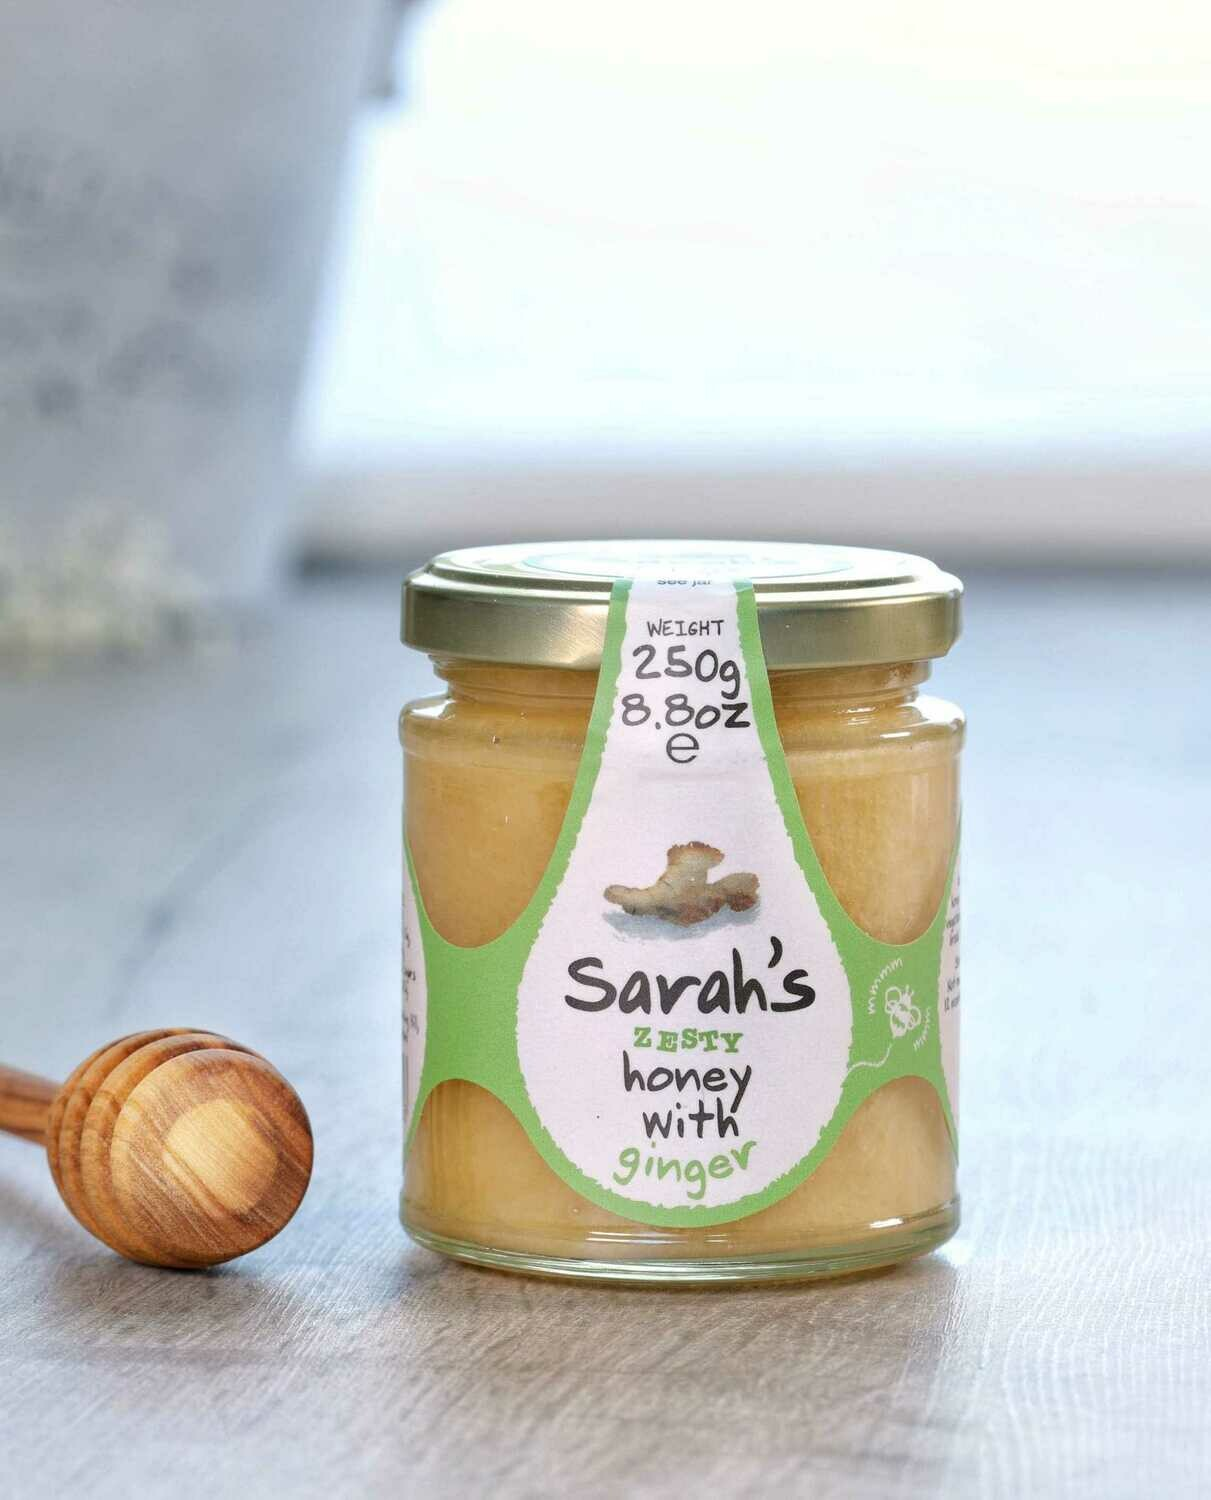 Sarah's Zesty Honey with Ginger